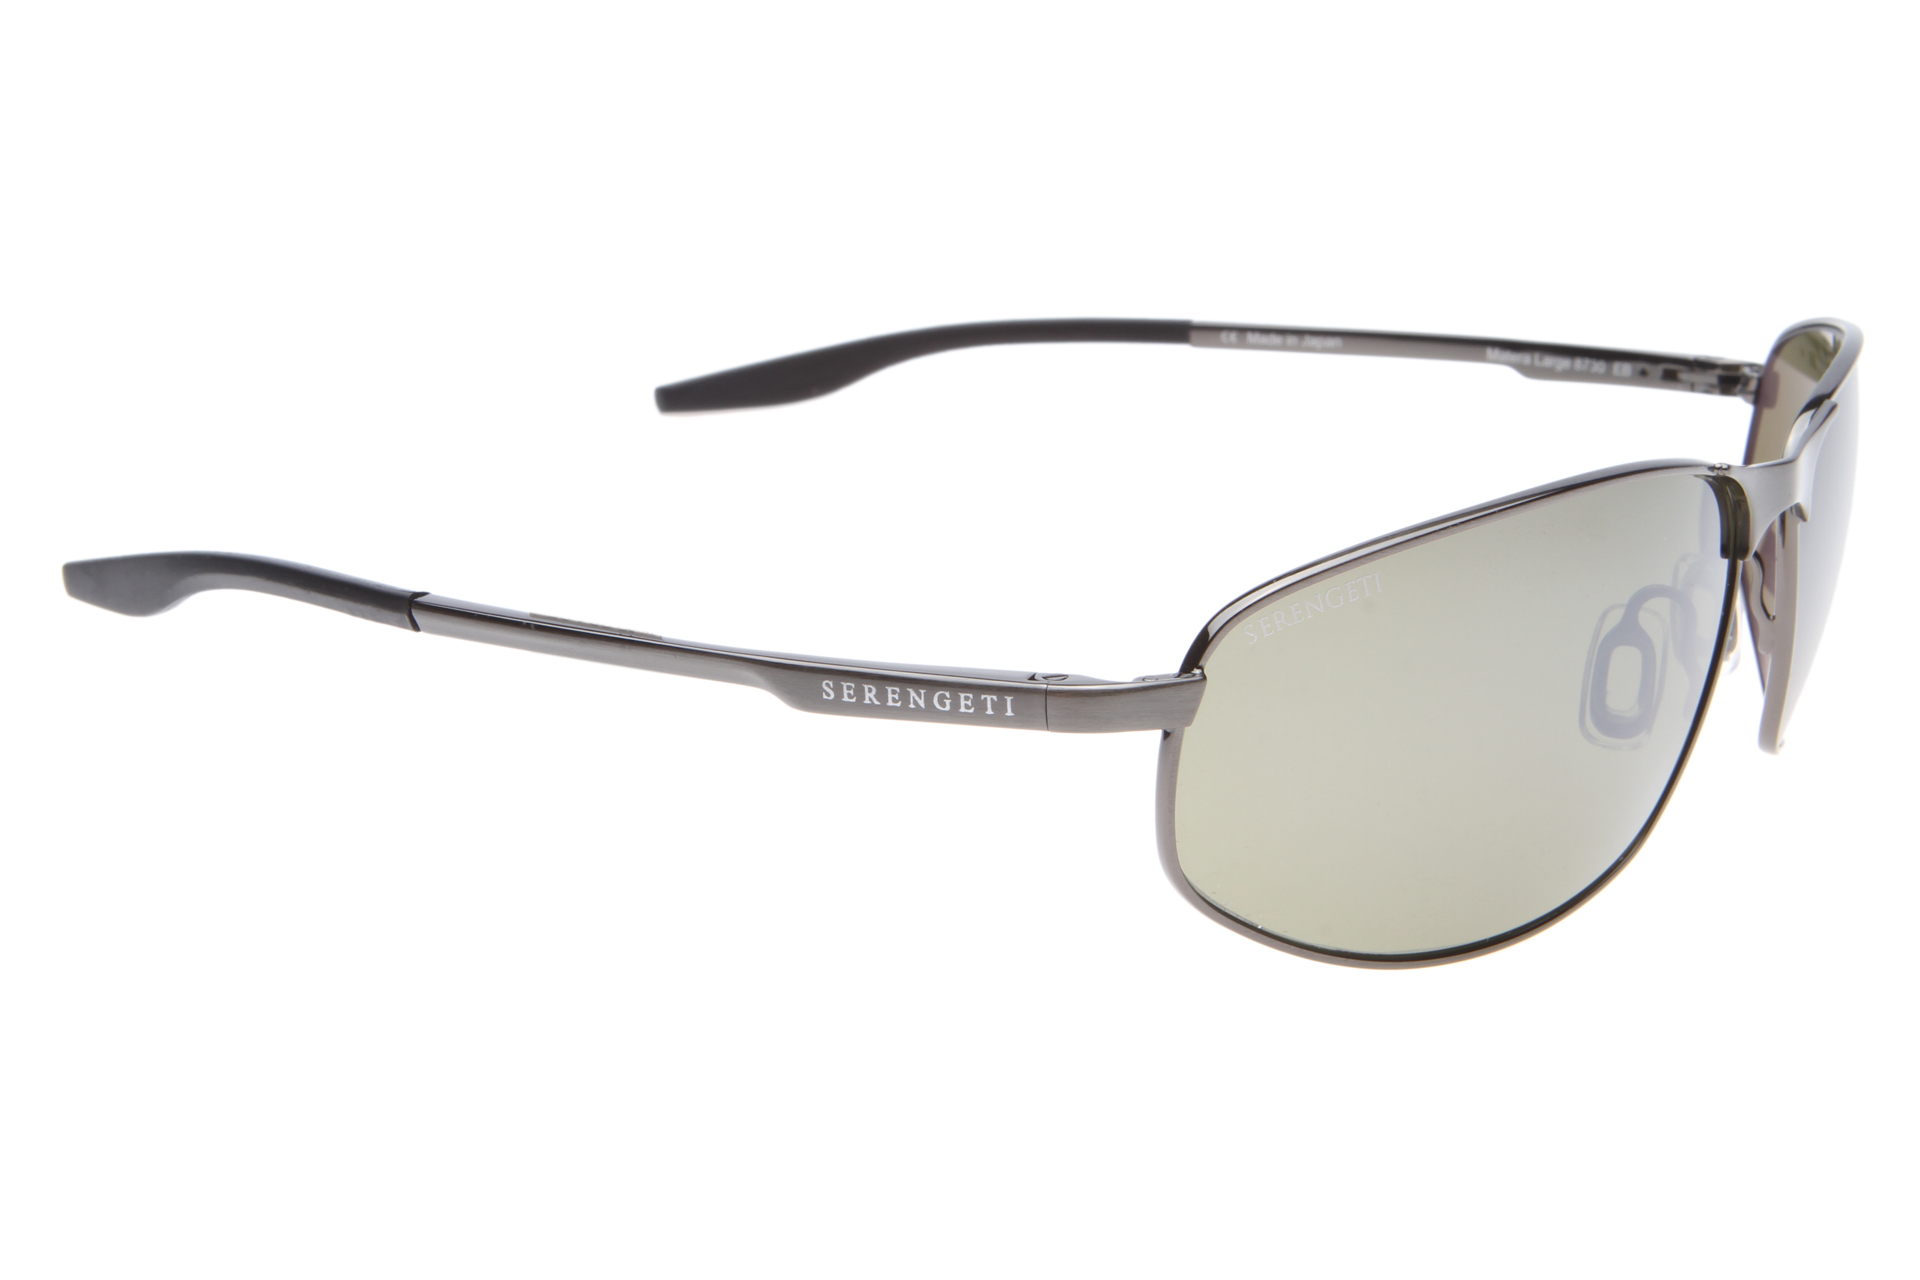 Serengeti Matera Large 8729 (Satin Black) Polarized, Spiegelcoating